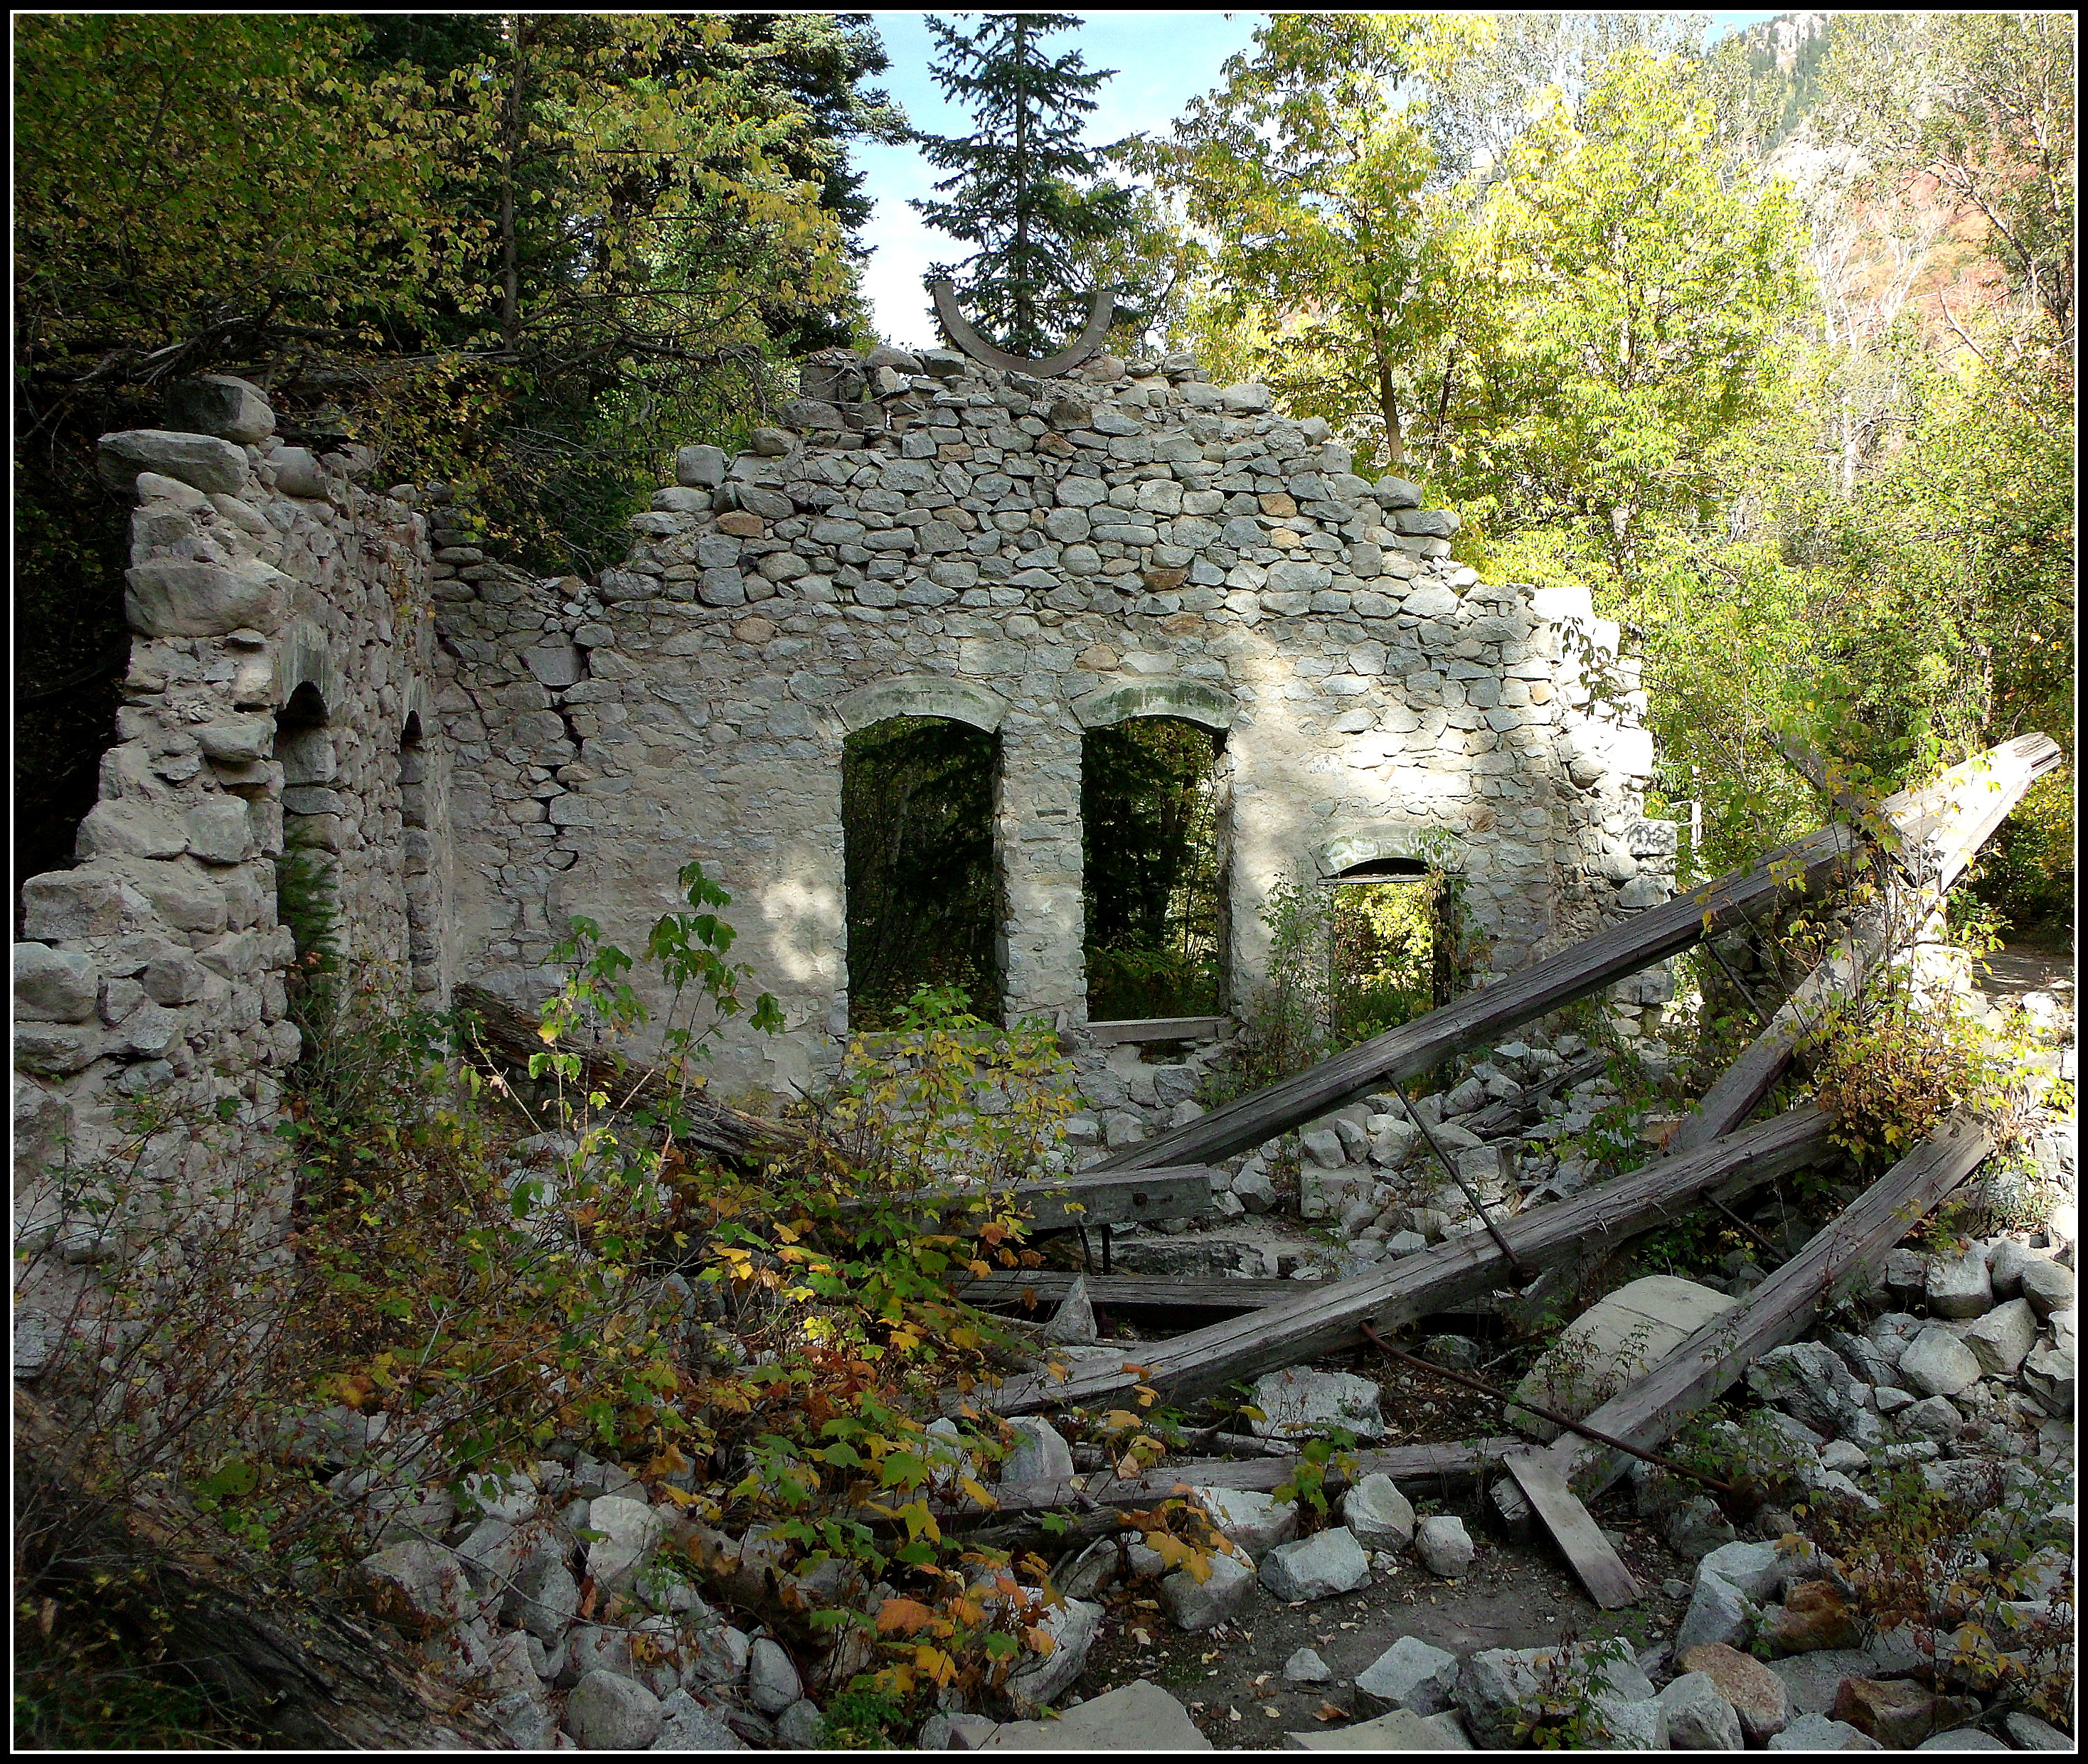 Ruins of Old Settlement 819.72 Kb